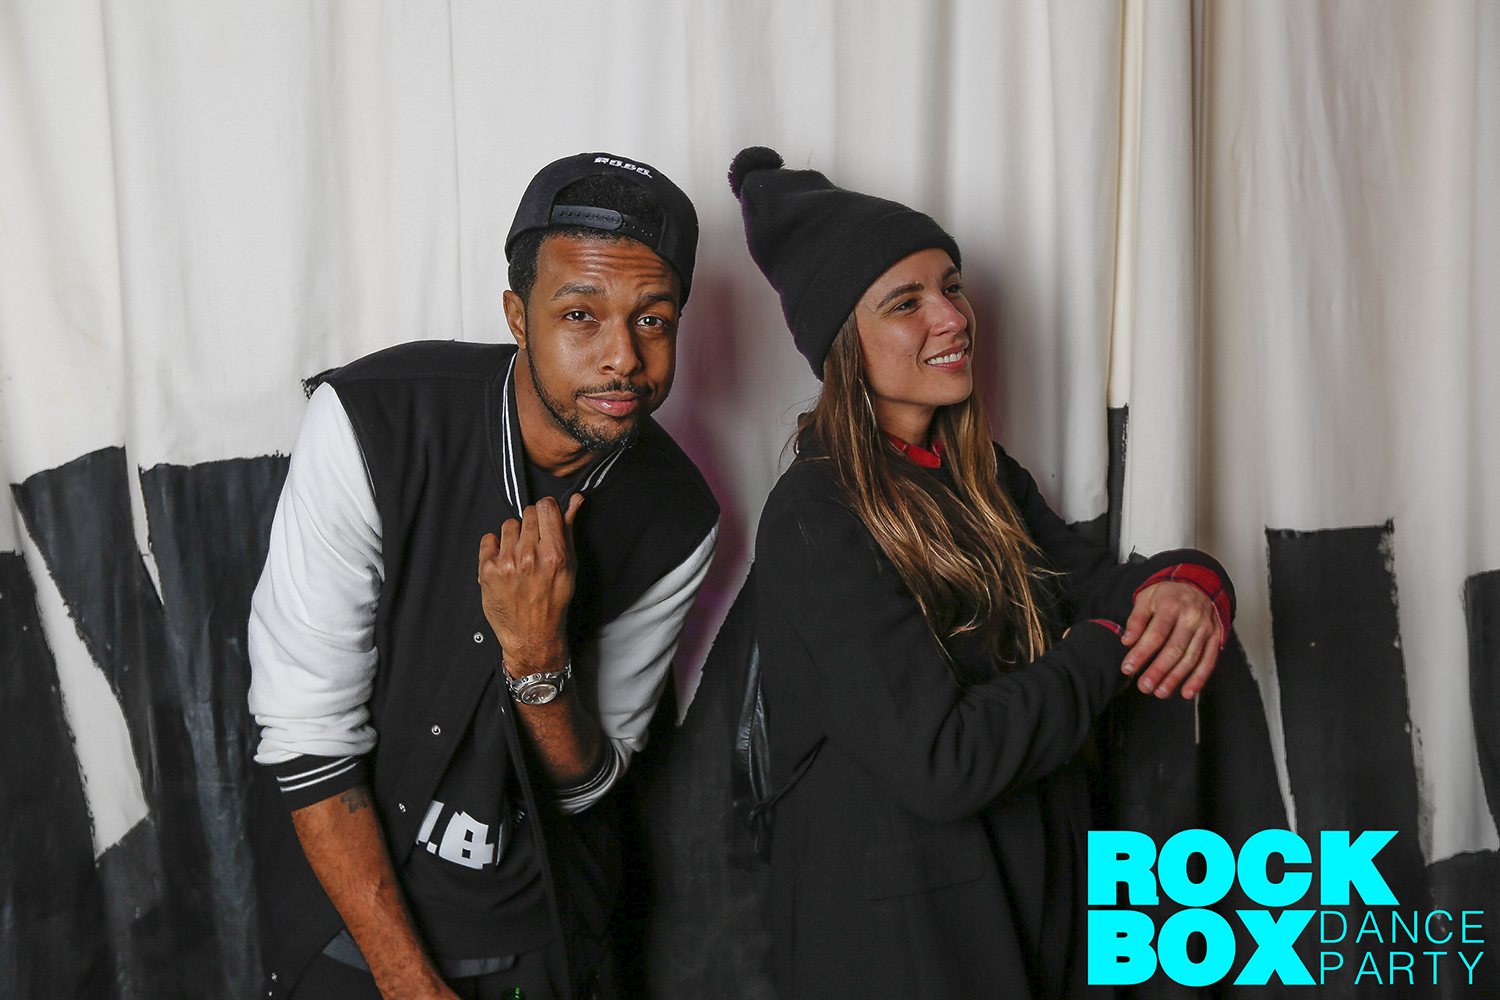 Rock box feb 2015-0149.jpg